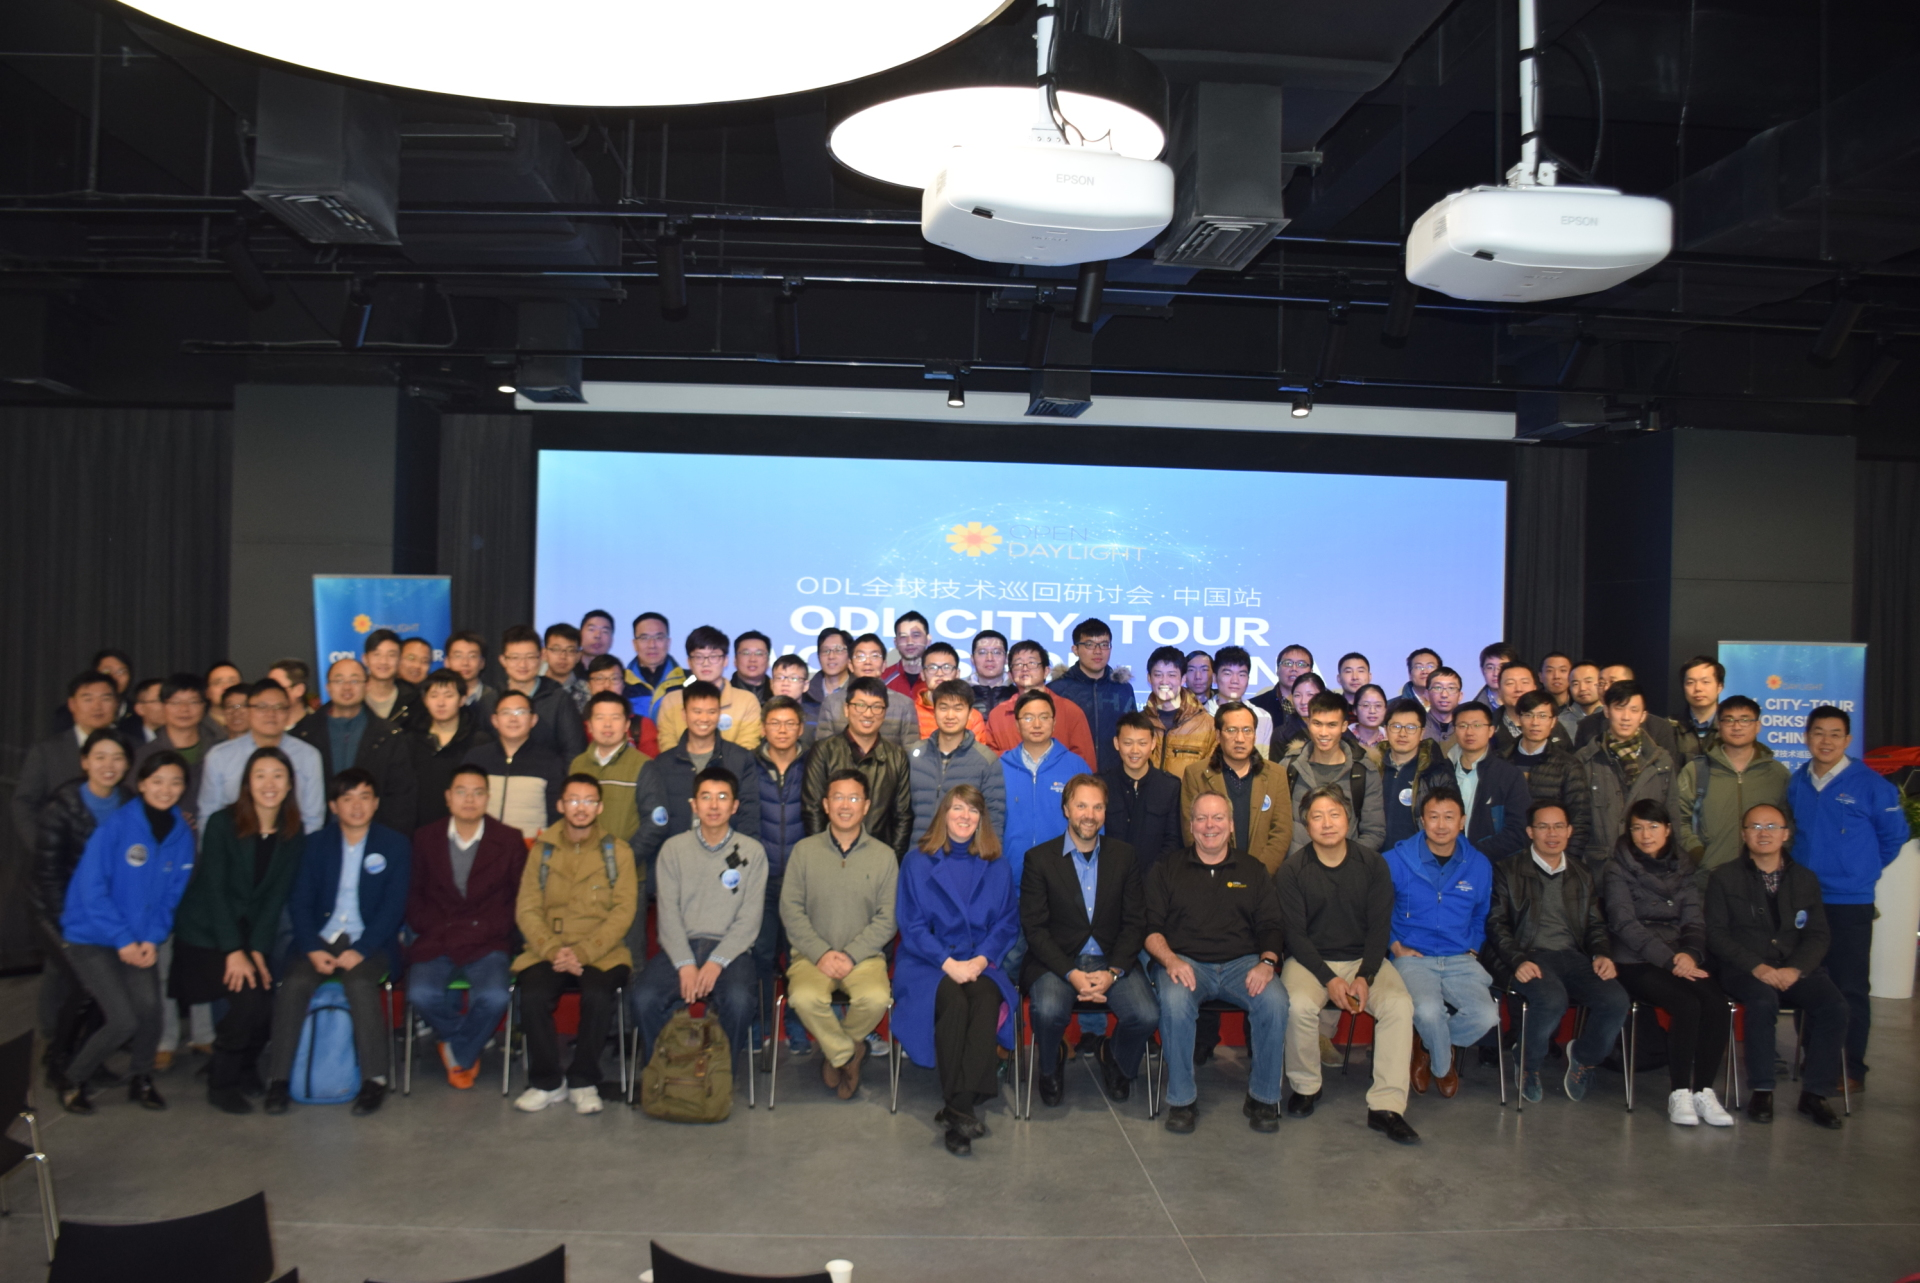 OpenDaylight City Tour Day 4 - Shanghai